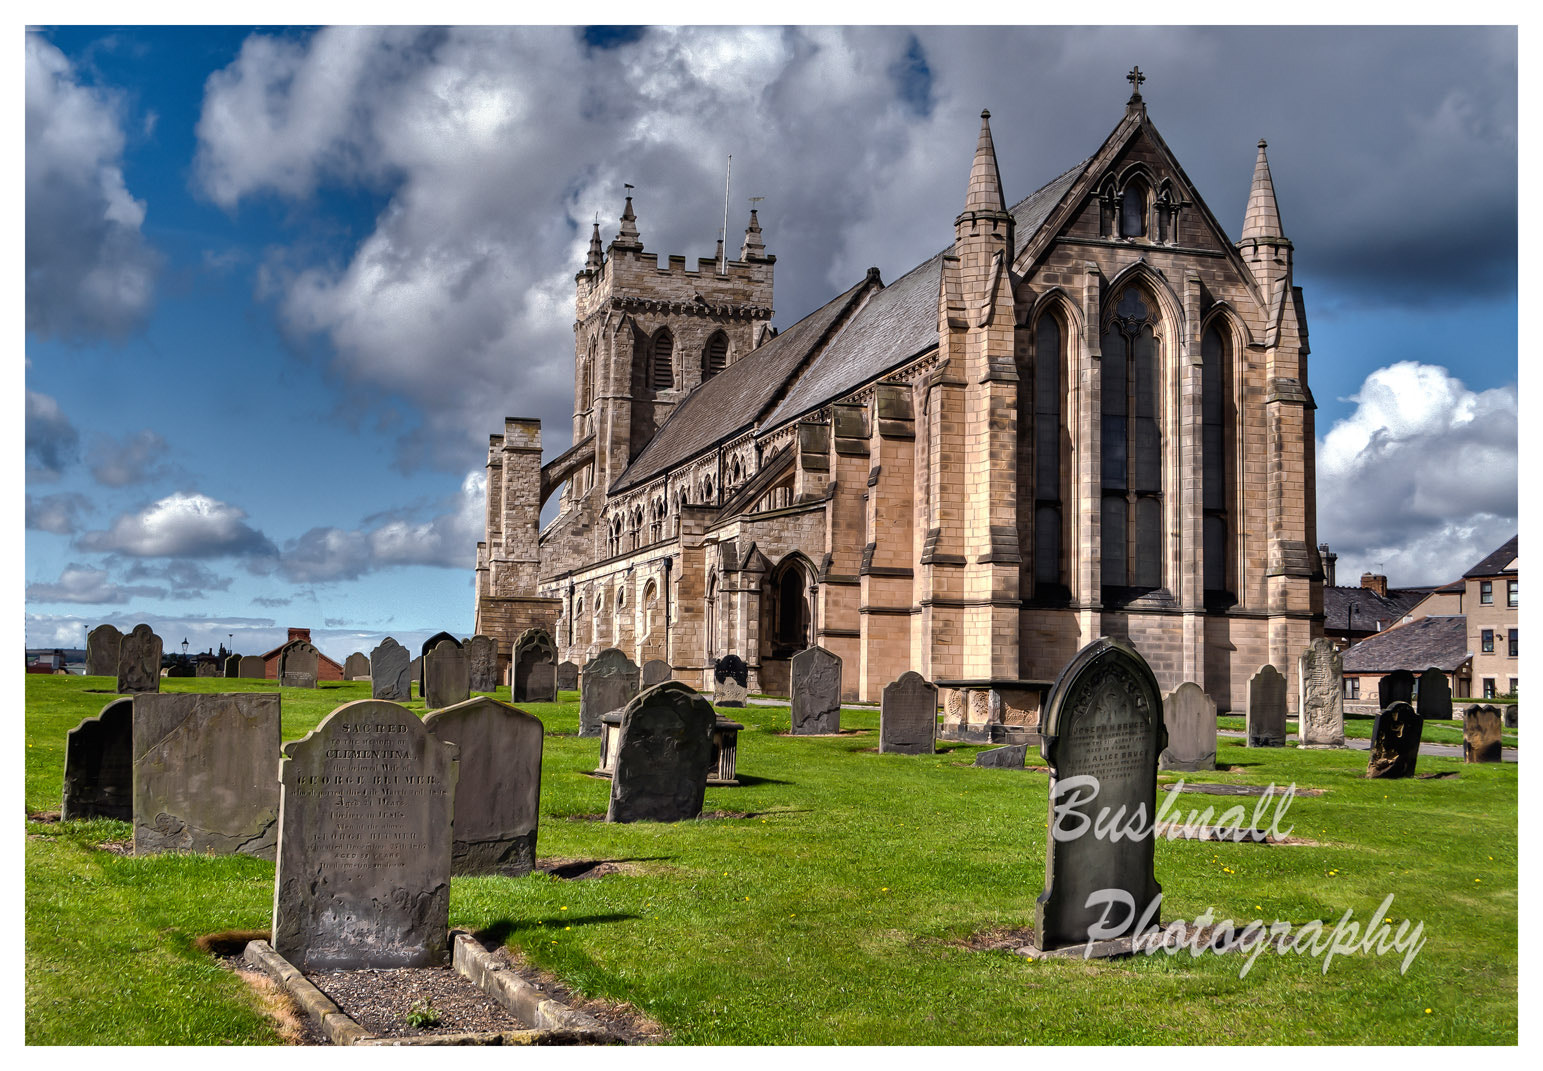 Photograph St Hildas Church by Darren Bushnall on 500px